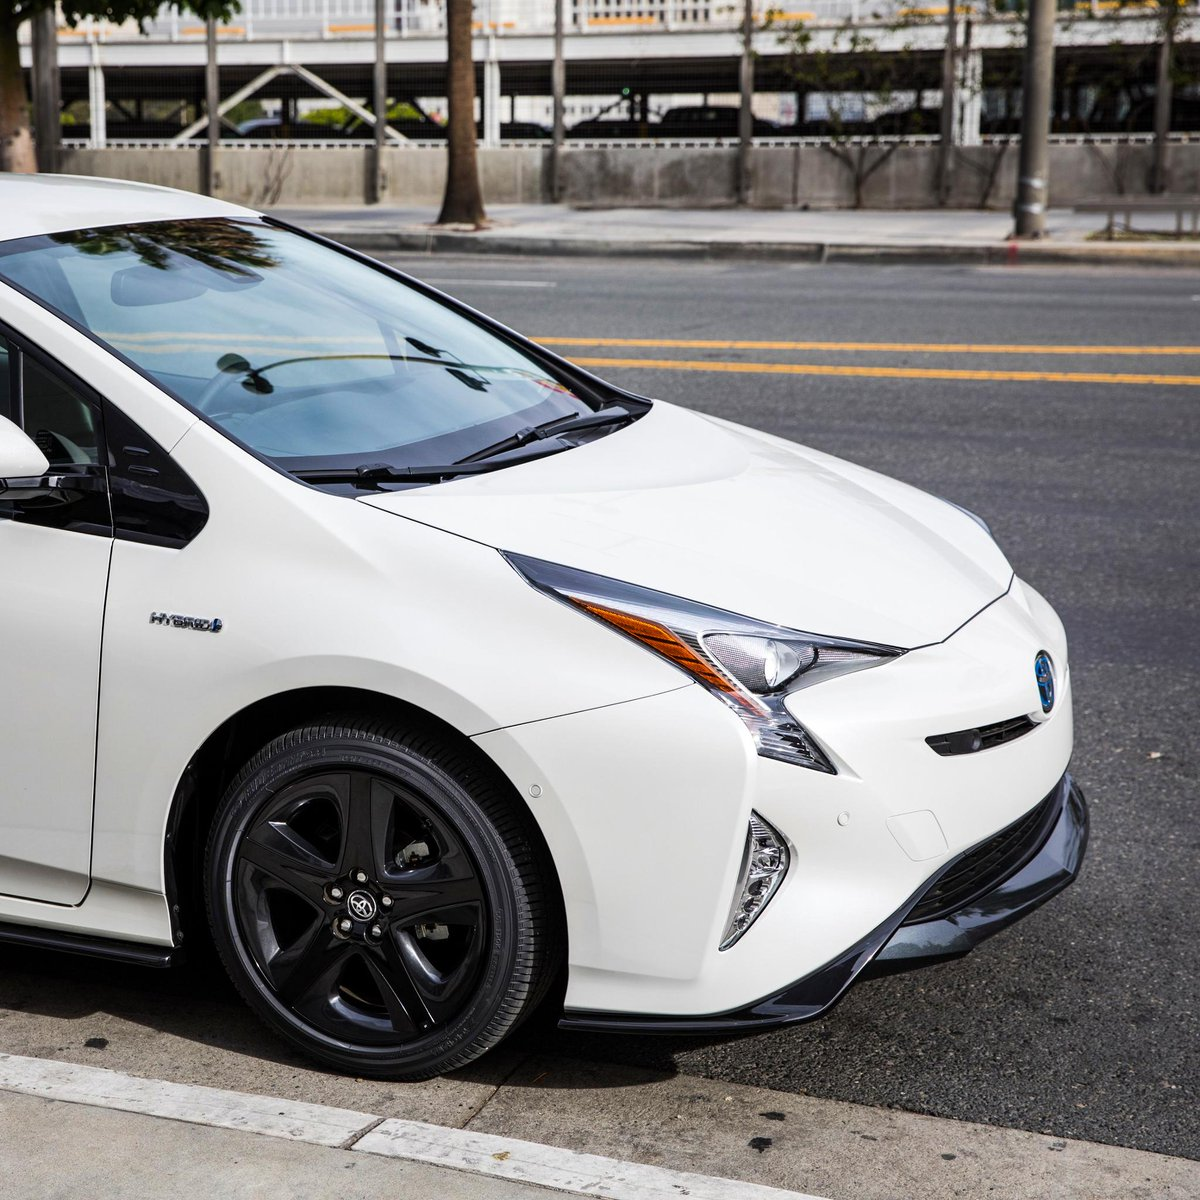 test Twitter Media - Find more excitement around every corner. Explore #Prius: https://t.co/D80YjtUZv1 https://t.co/ZHEKNUkCOc